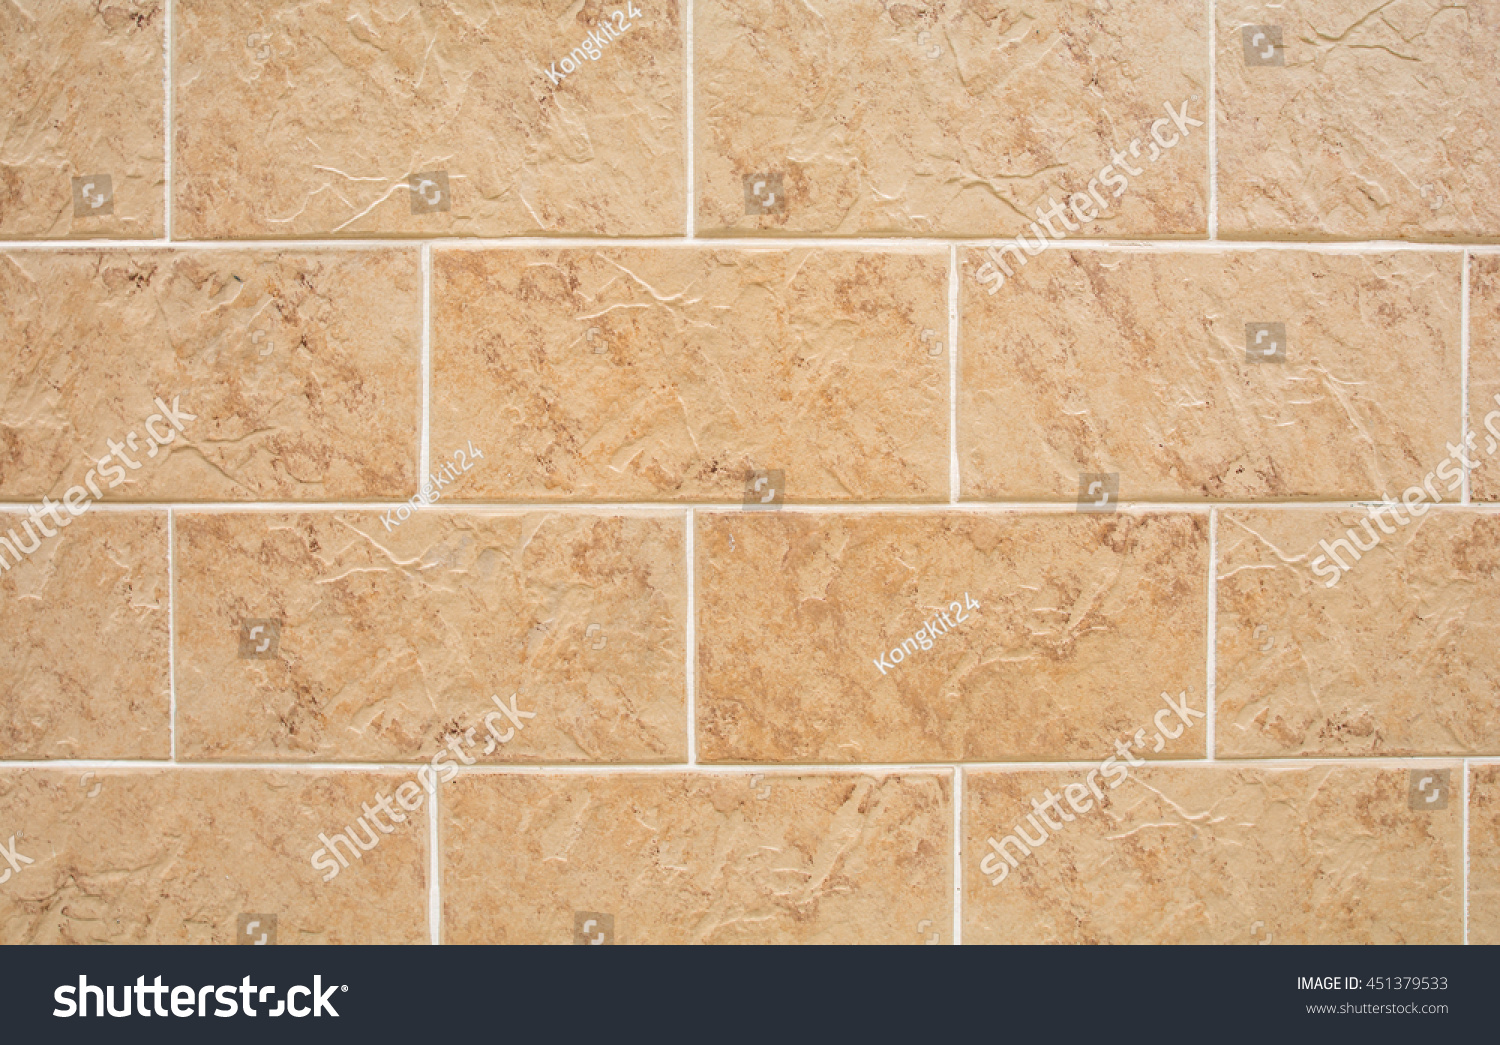 Light brown ceramic tile wall stock photo 451379533 shutterstock light brown ceramic tile wall dailygadgetfo Image collections